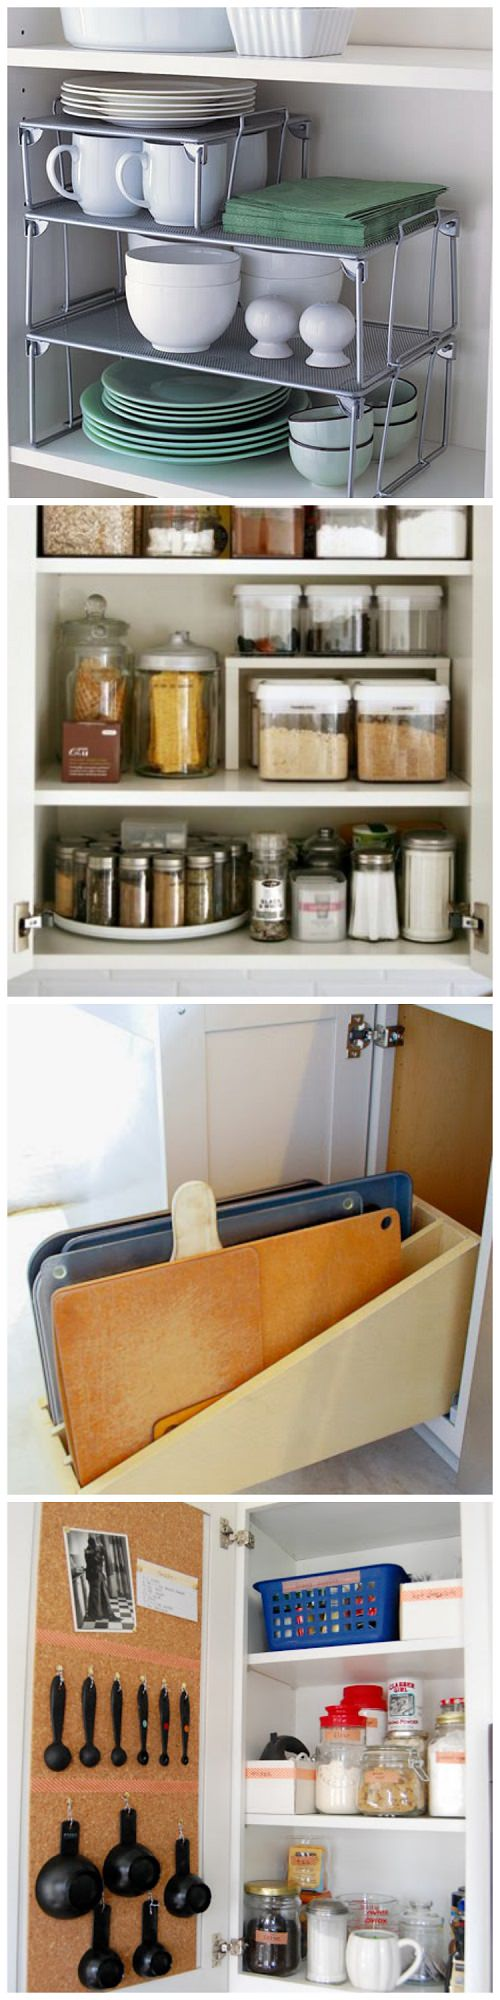 15 Organizing Ideas That Make The Most Out Of Your